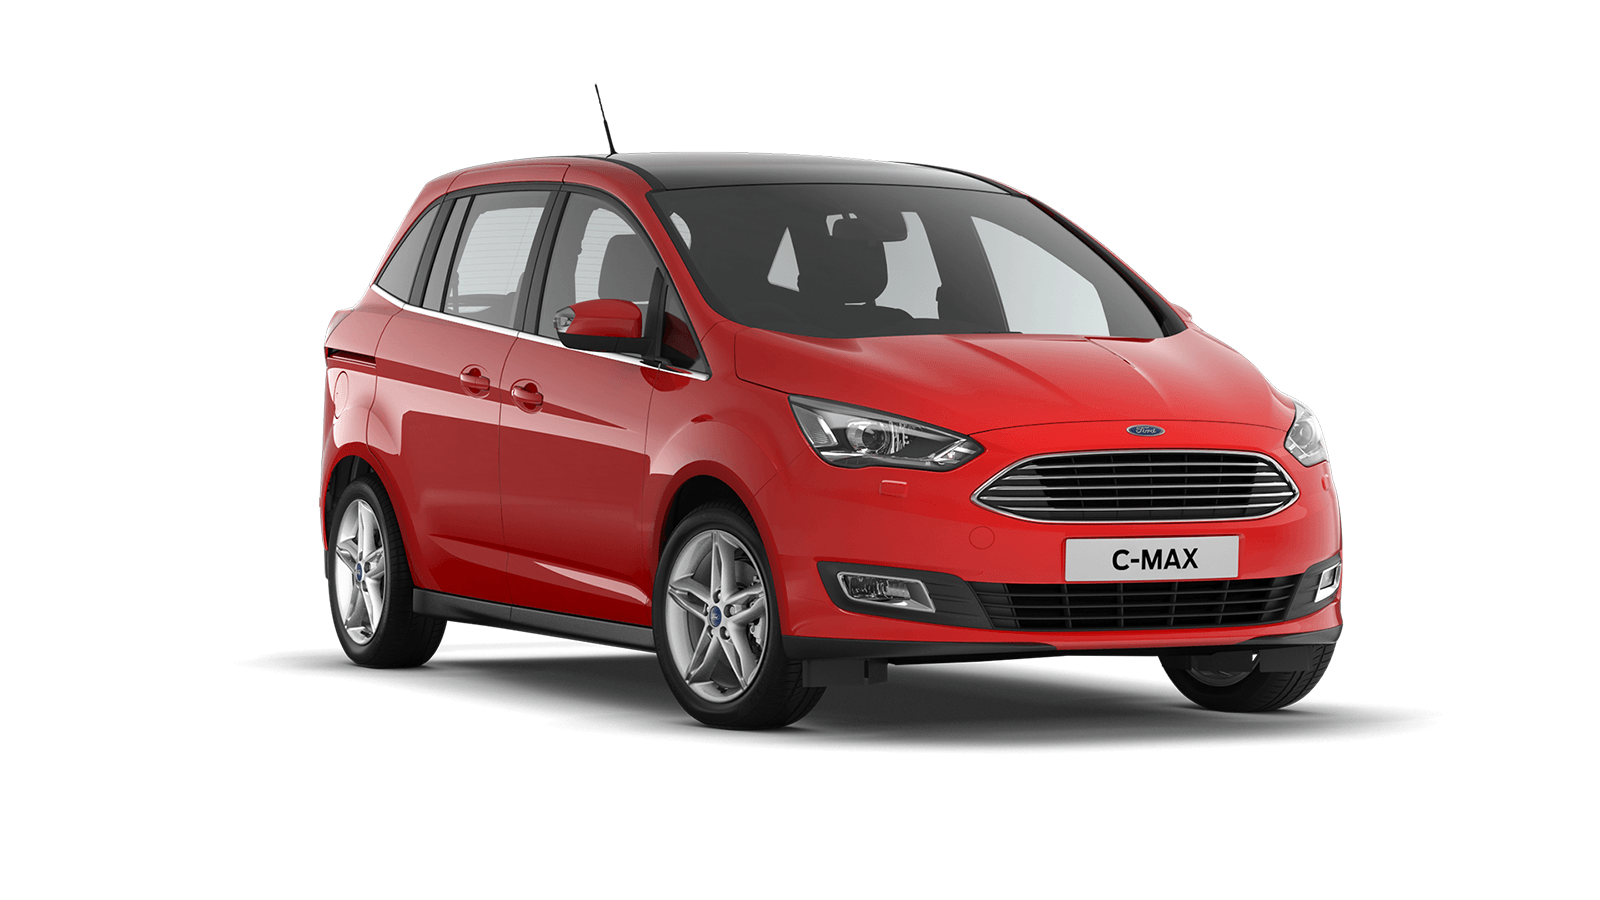 Ford Grand C-MAX at Victoria Garage